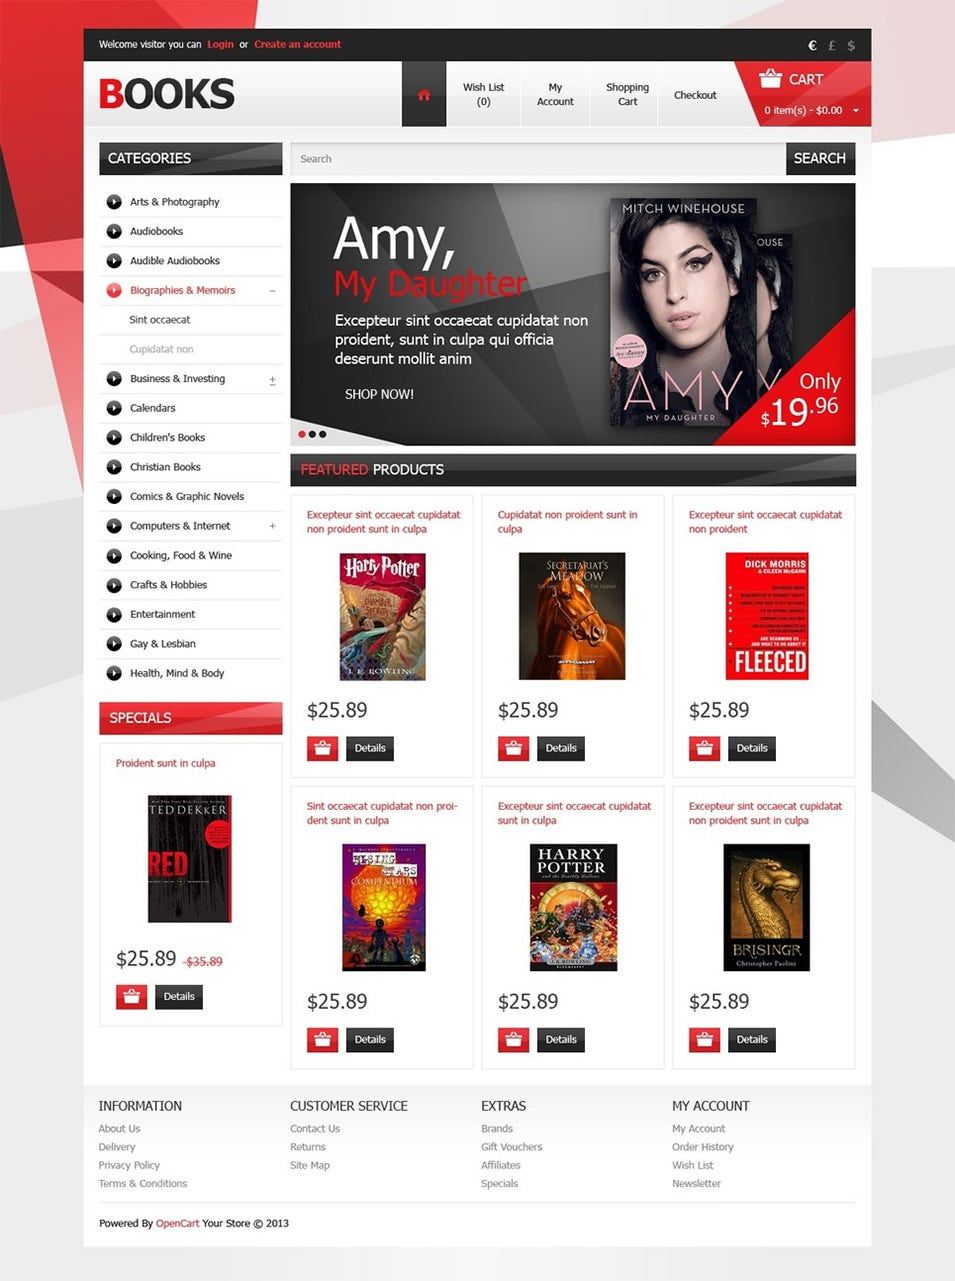 Books without Limits OpenCart Template Top Result 60 Inspirational Opencart Bookstore Template Gallery 2017 Phe2